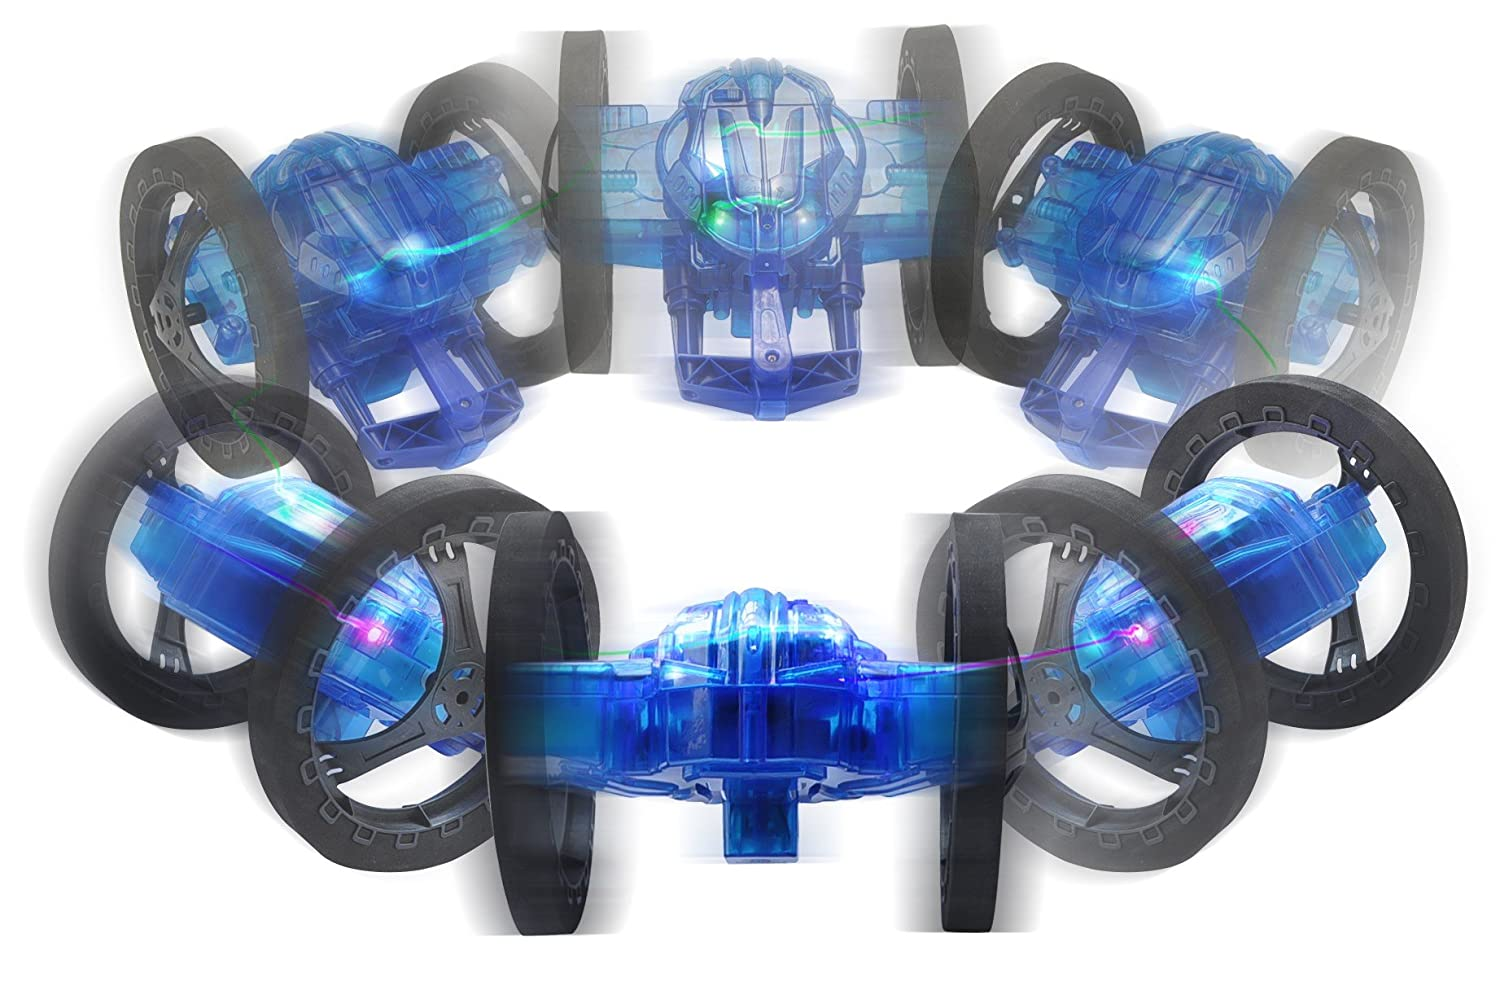 Amazon.com: Mindscope Turbo Twister Catapult Jumping Remote Control RC Light Up LED Stunt Action Vehicle BLUE (49 Mhz): Toys & Games